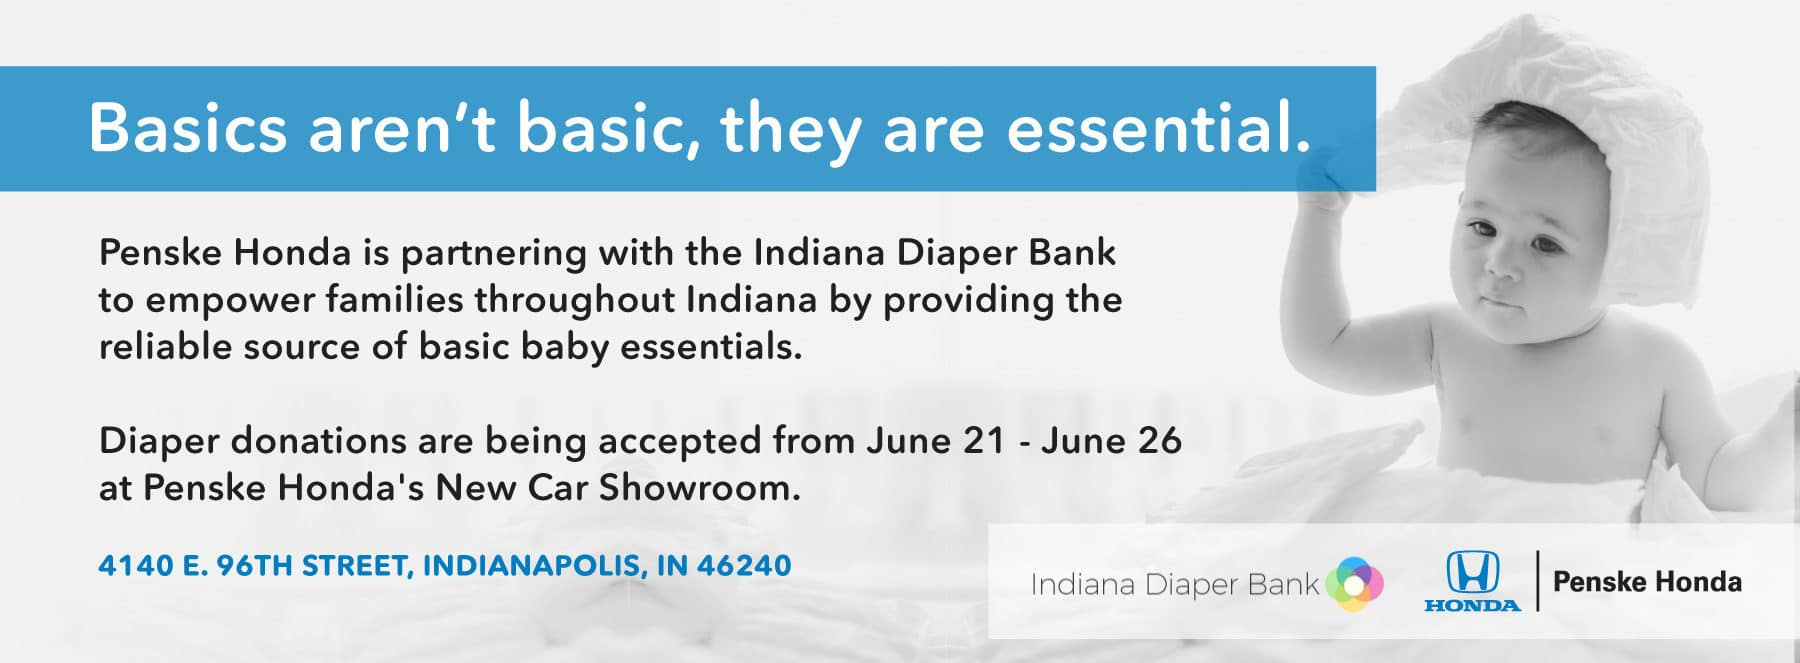 Penske Honda is partnering with the Indiana Diaper Bank to collect diapers June 21 - June 26